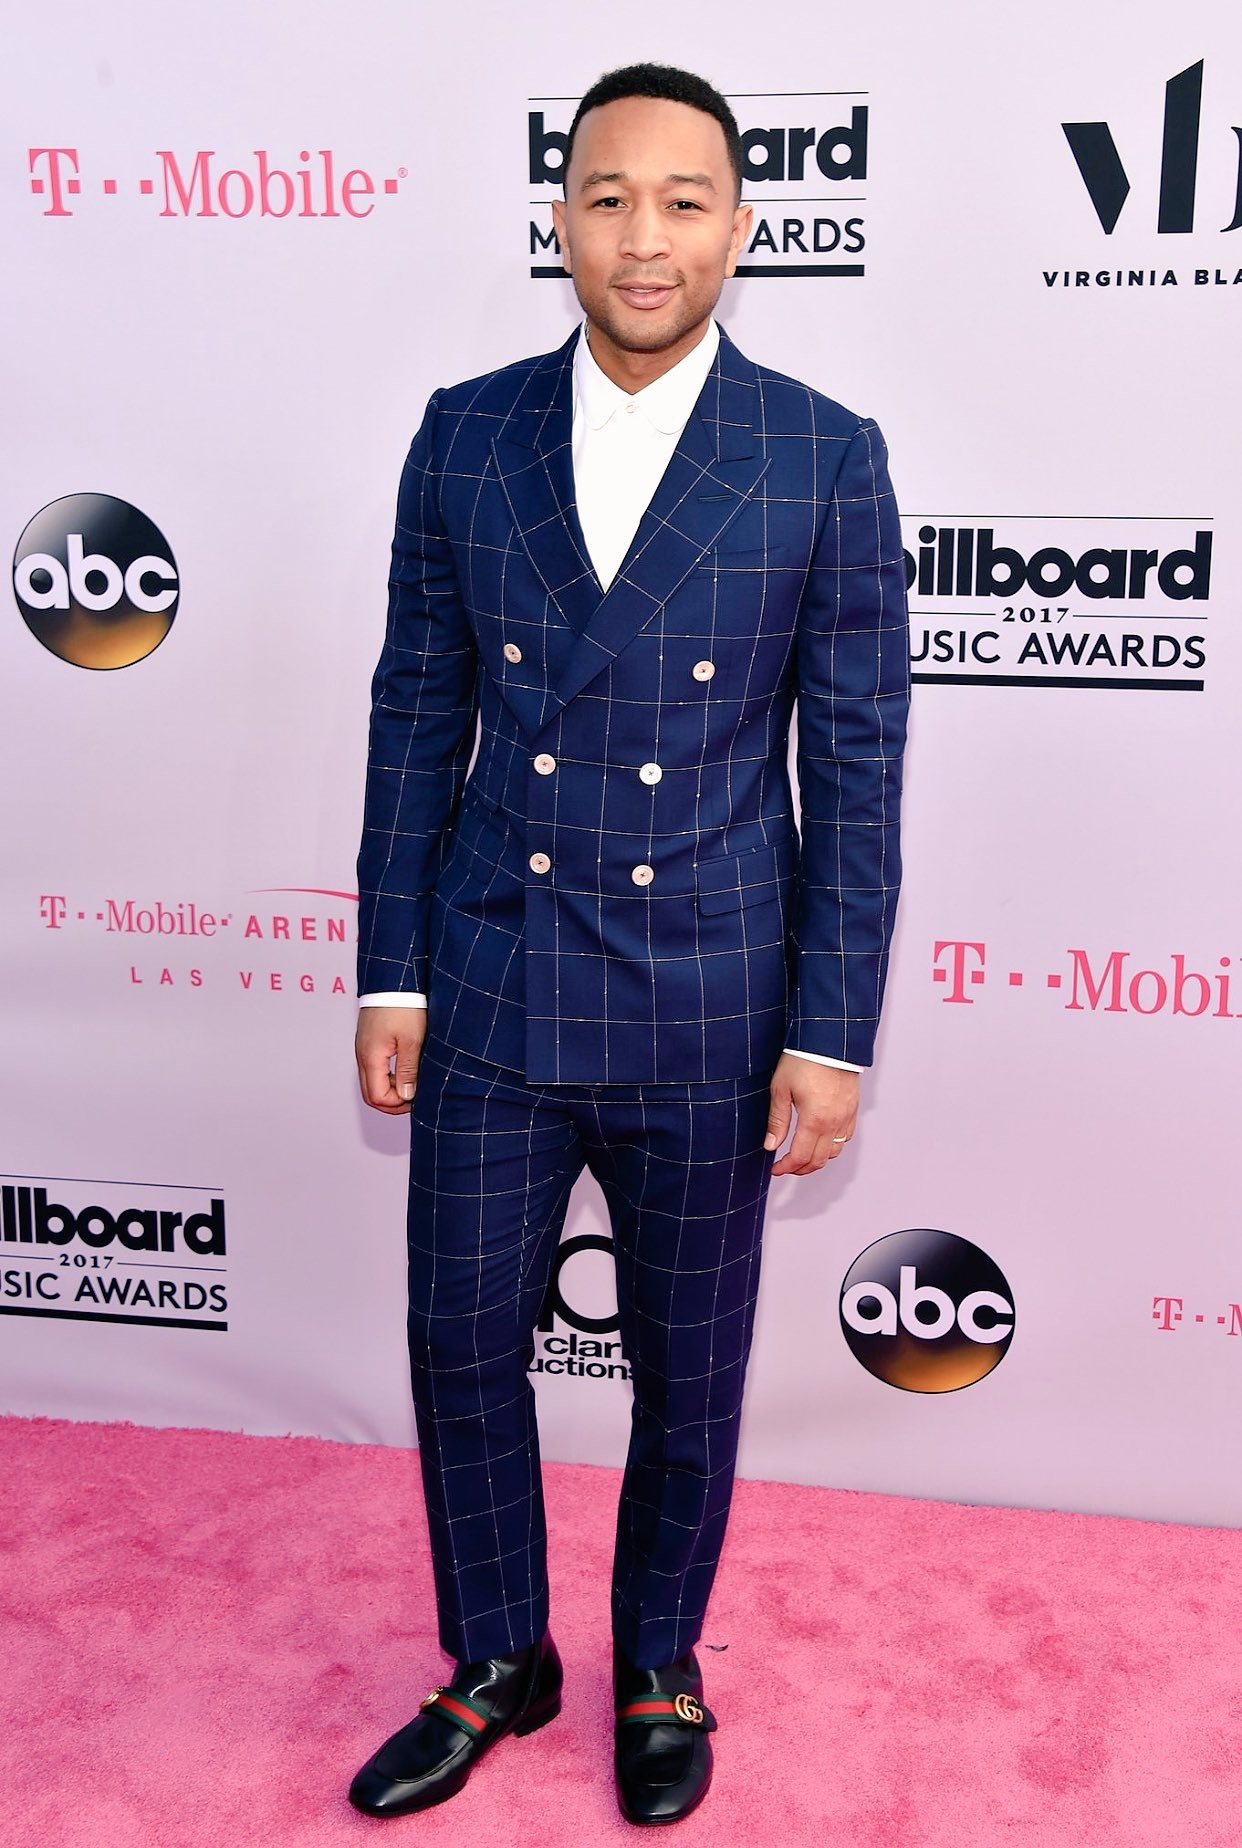 Spotted: John Legend Wears Gucci Suit & Loafers at Billboard Music Awards 2017